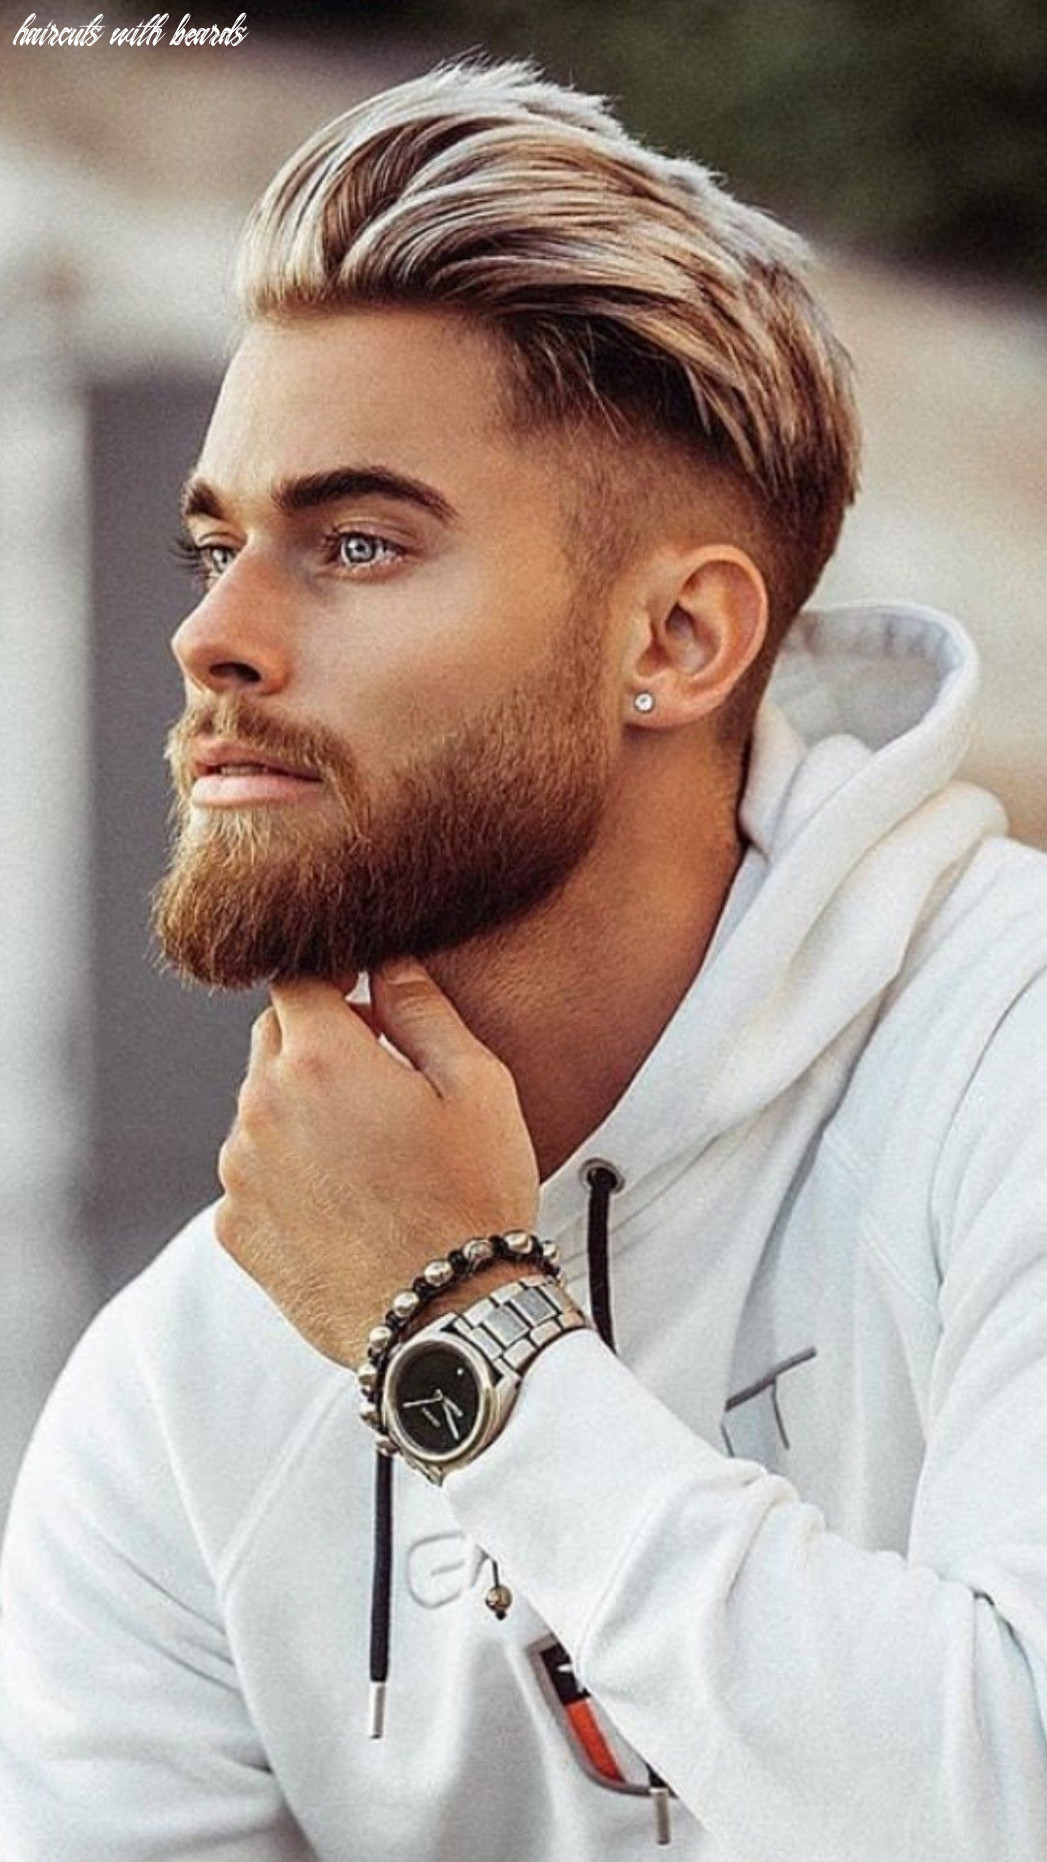 Hairstyles inspiration haircuts beards moustaches #haircut